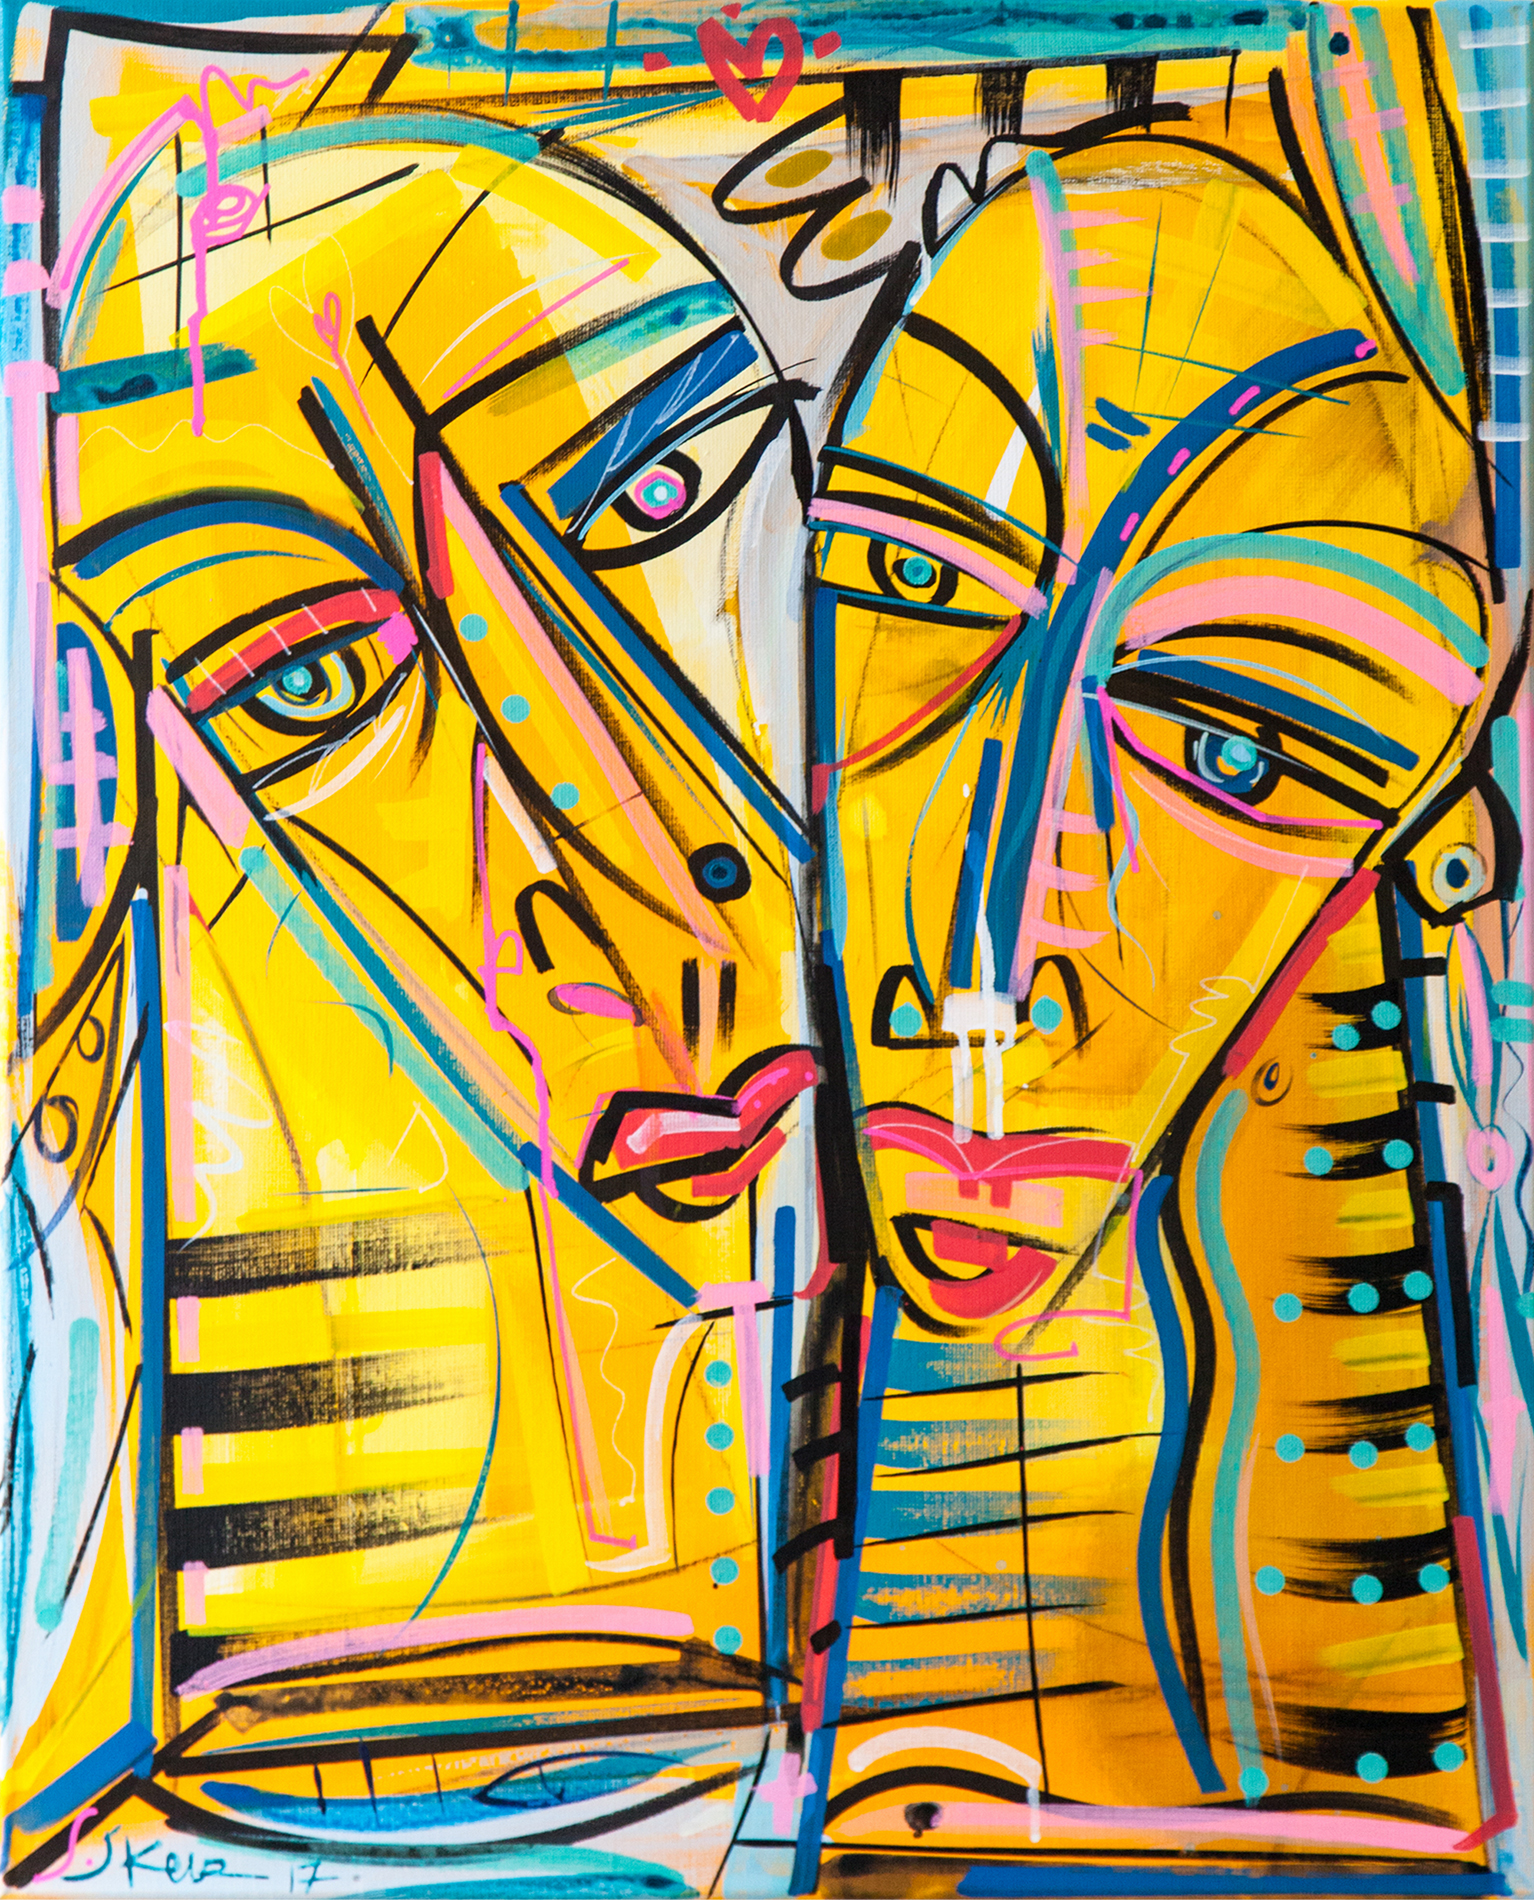 FACES_24 x 30 inches_2 Women on Yellow background on CANVAS_at Skeir Gallery_2017